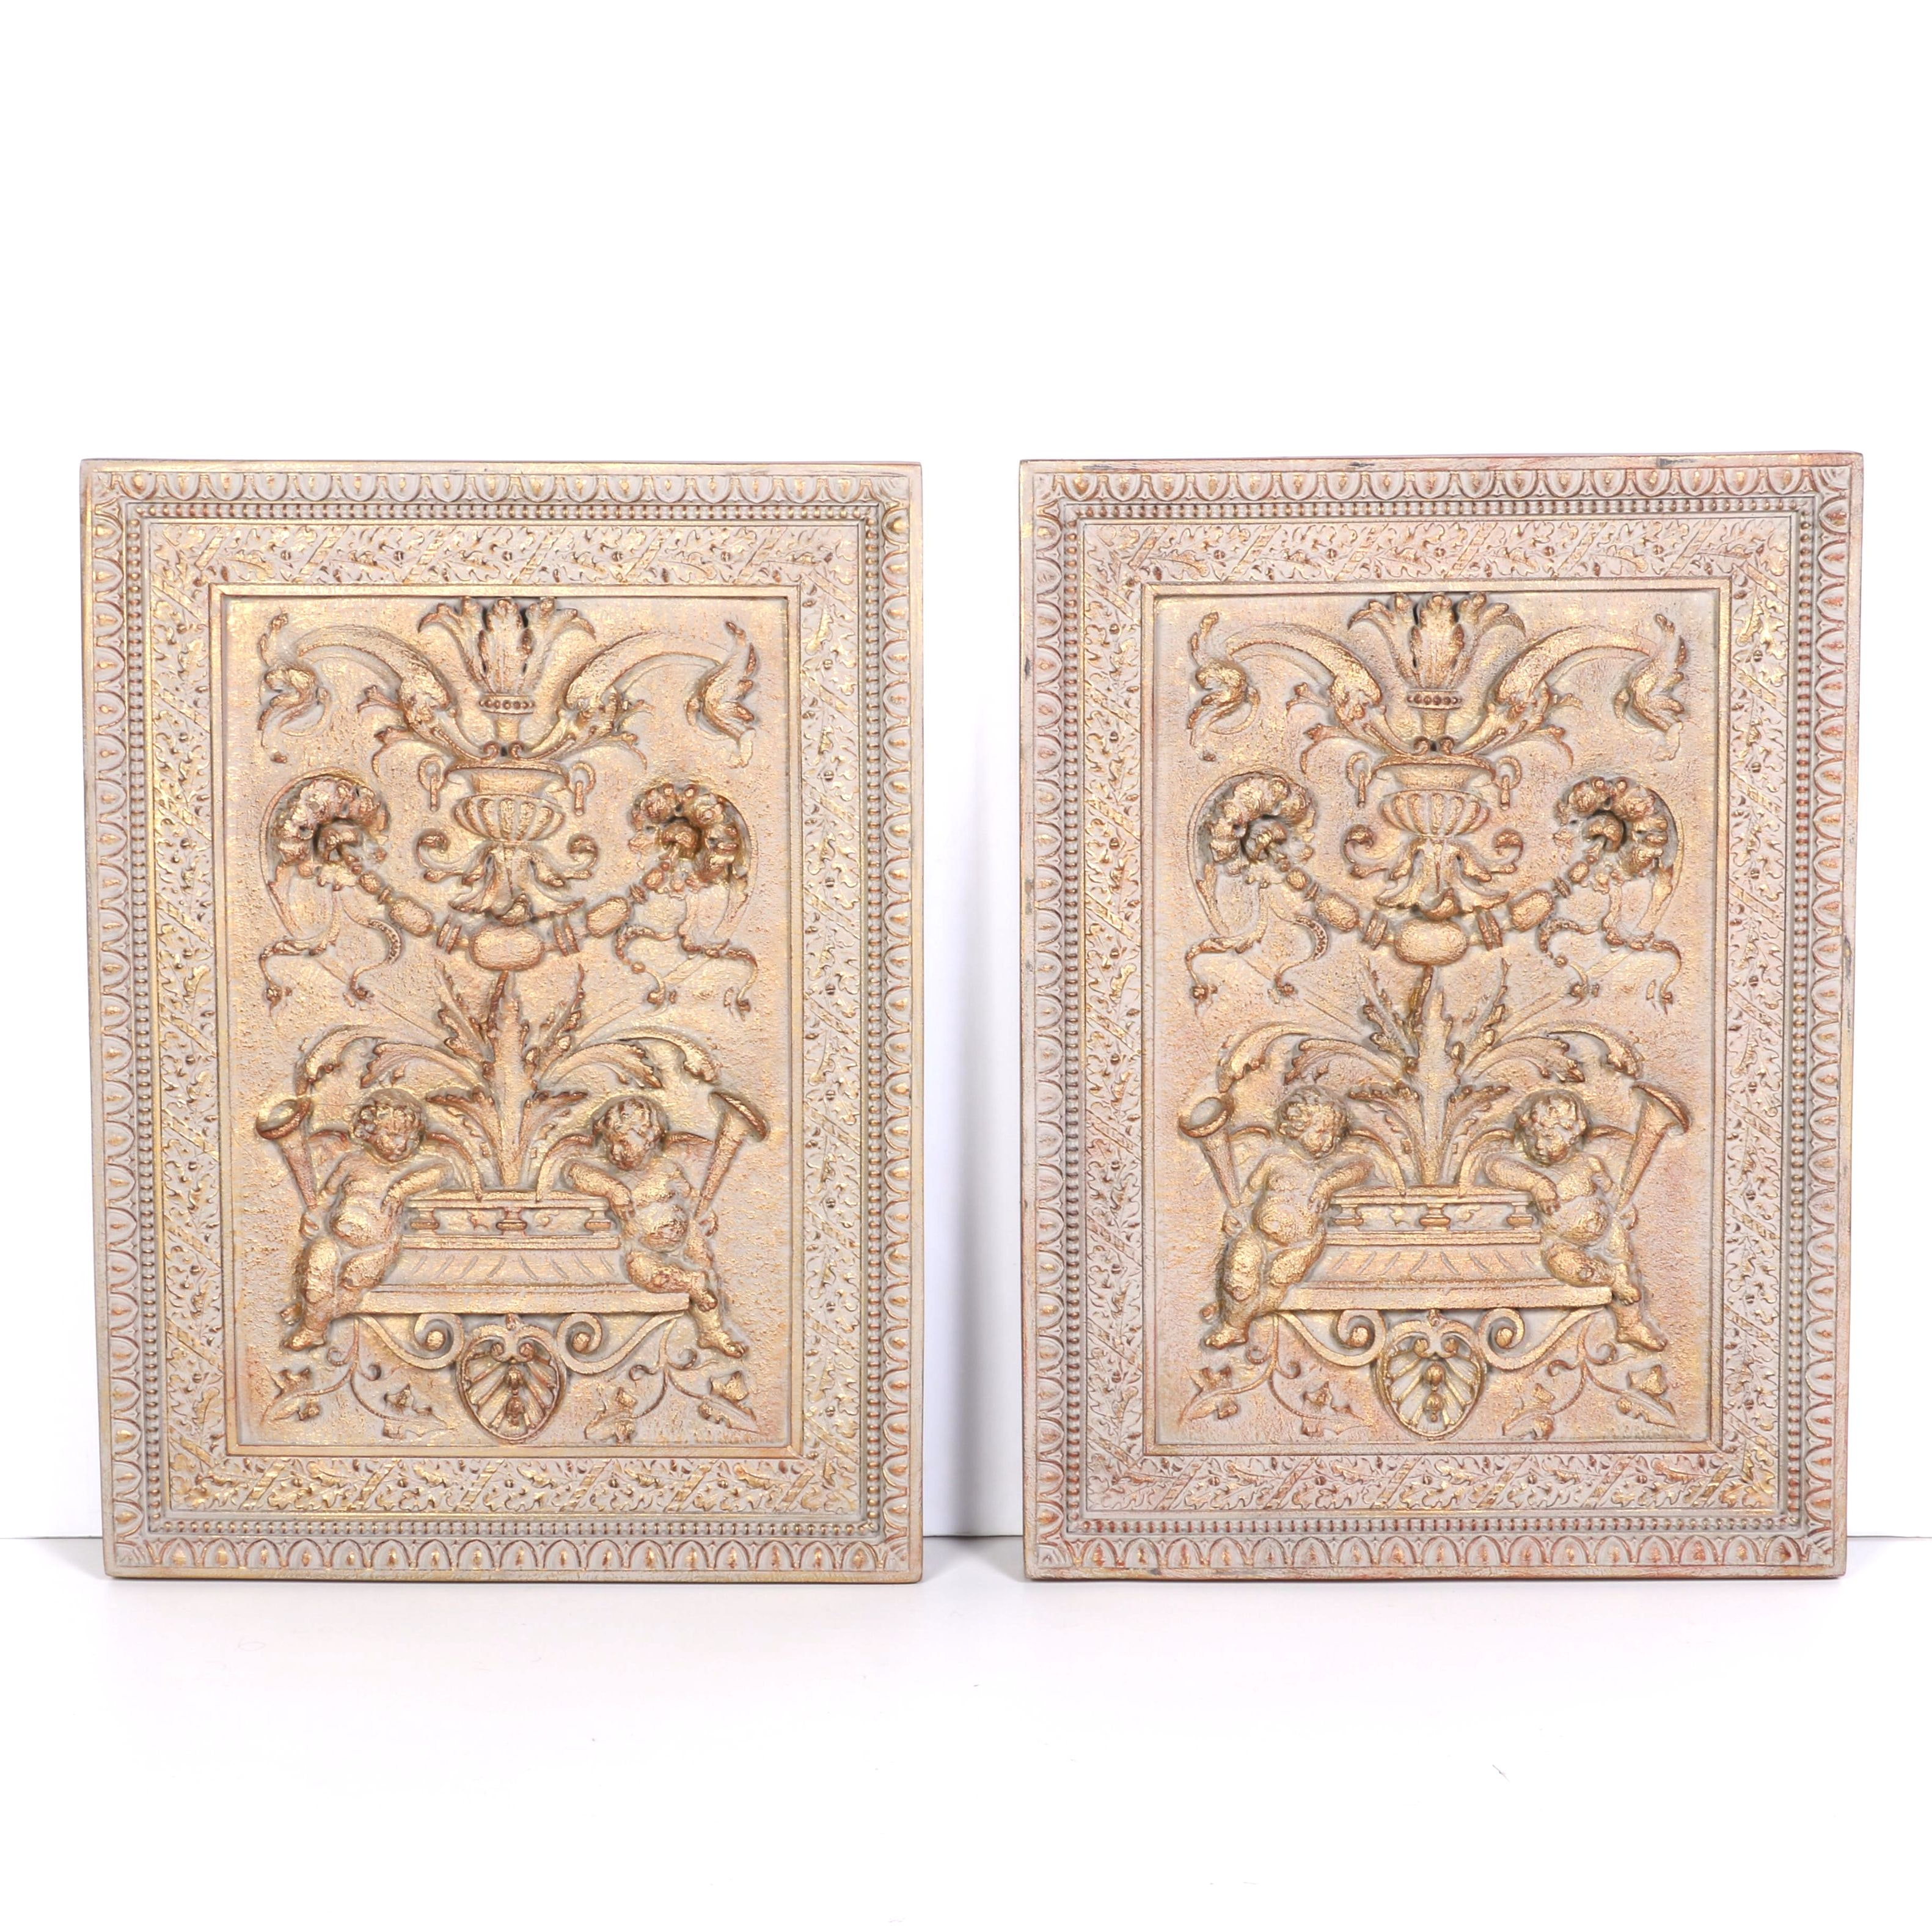 Resin Wall Hangings With Decorative Carvings in Low Relief